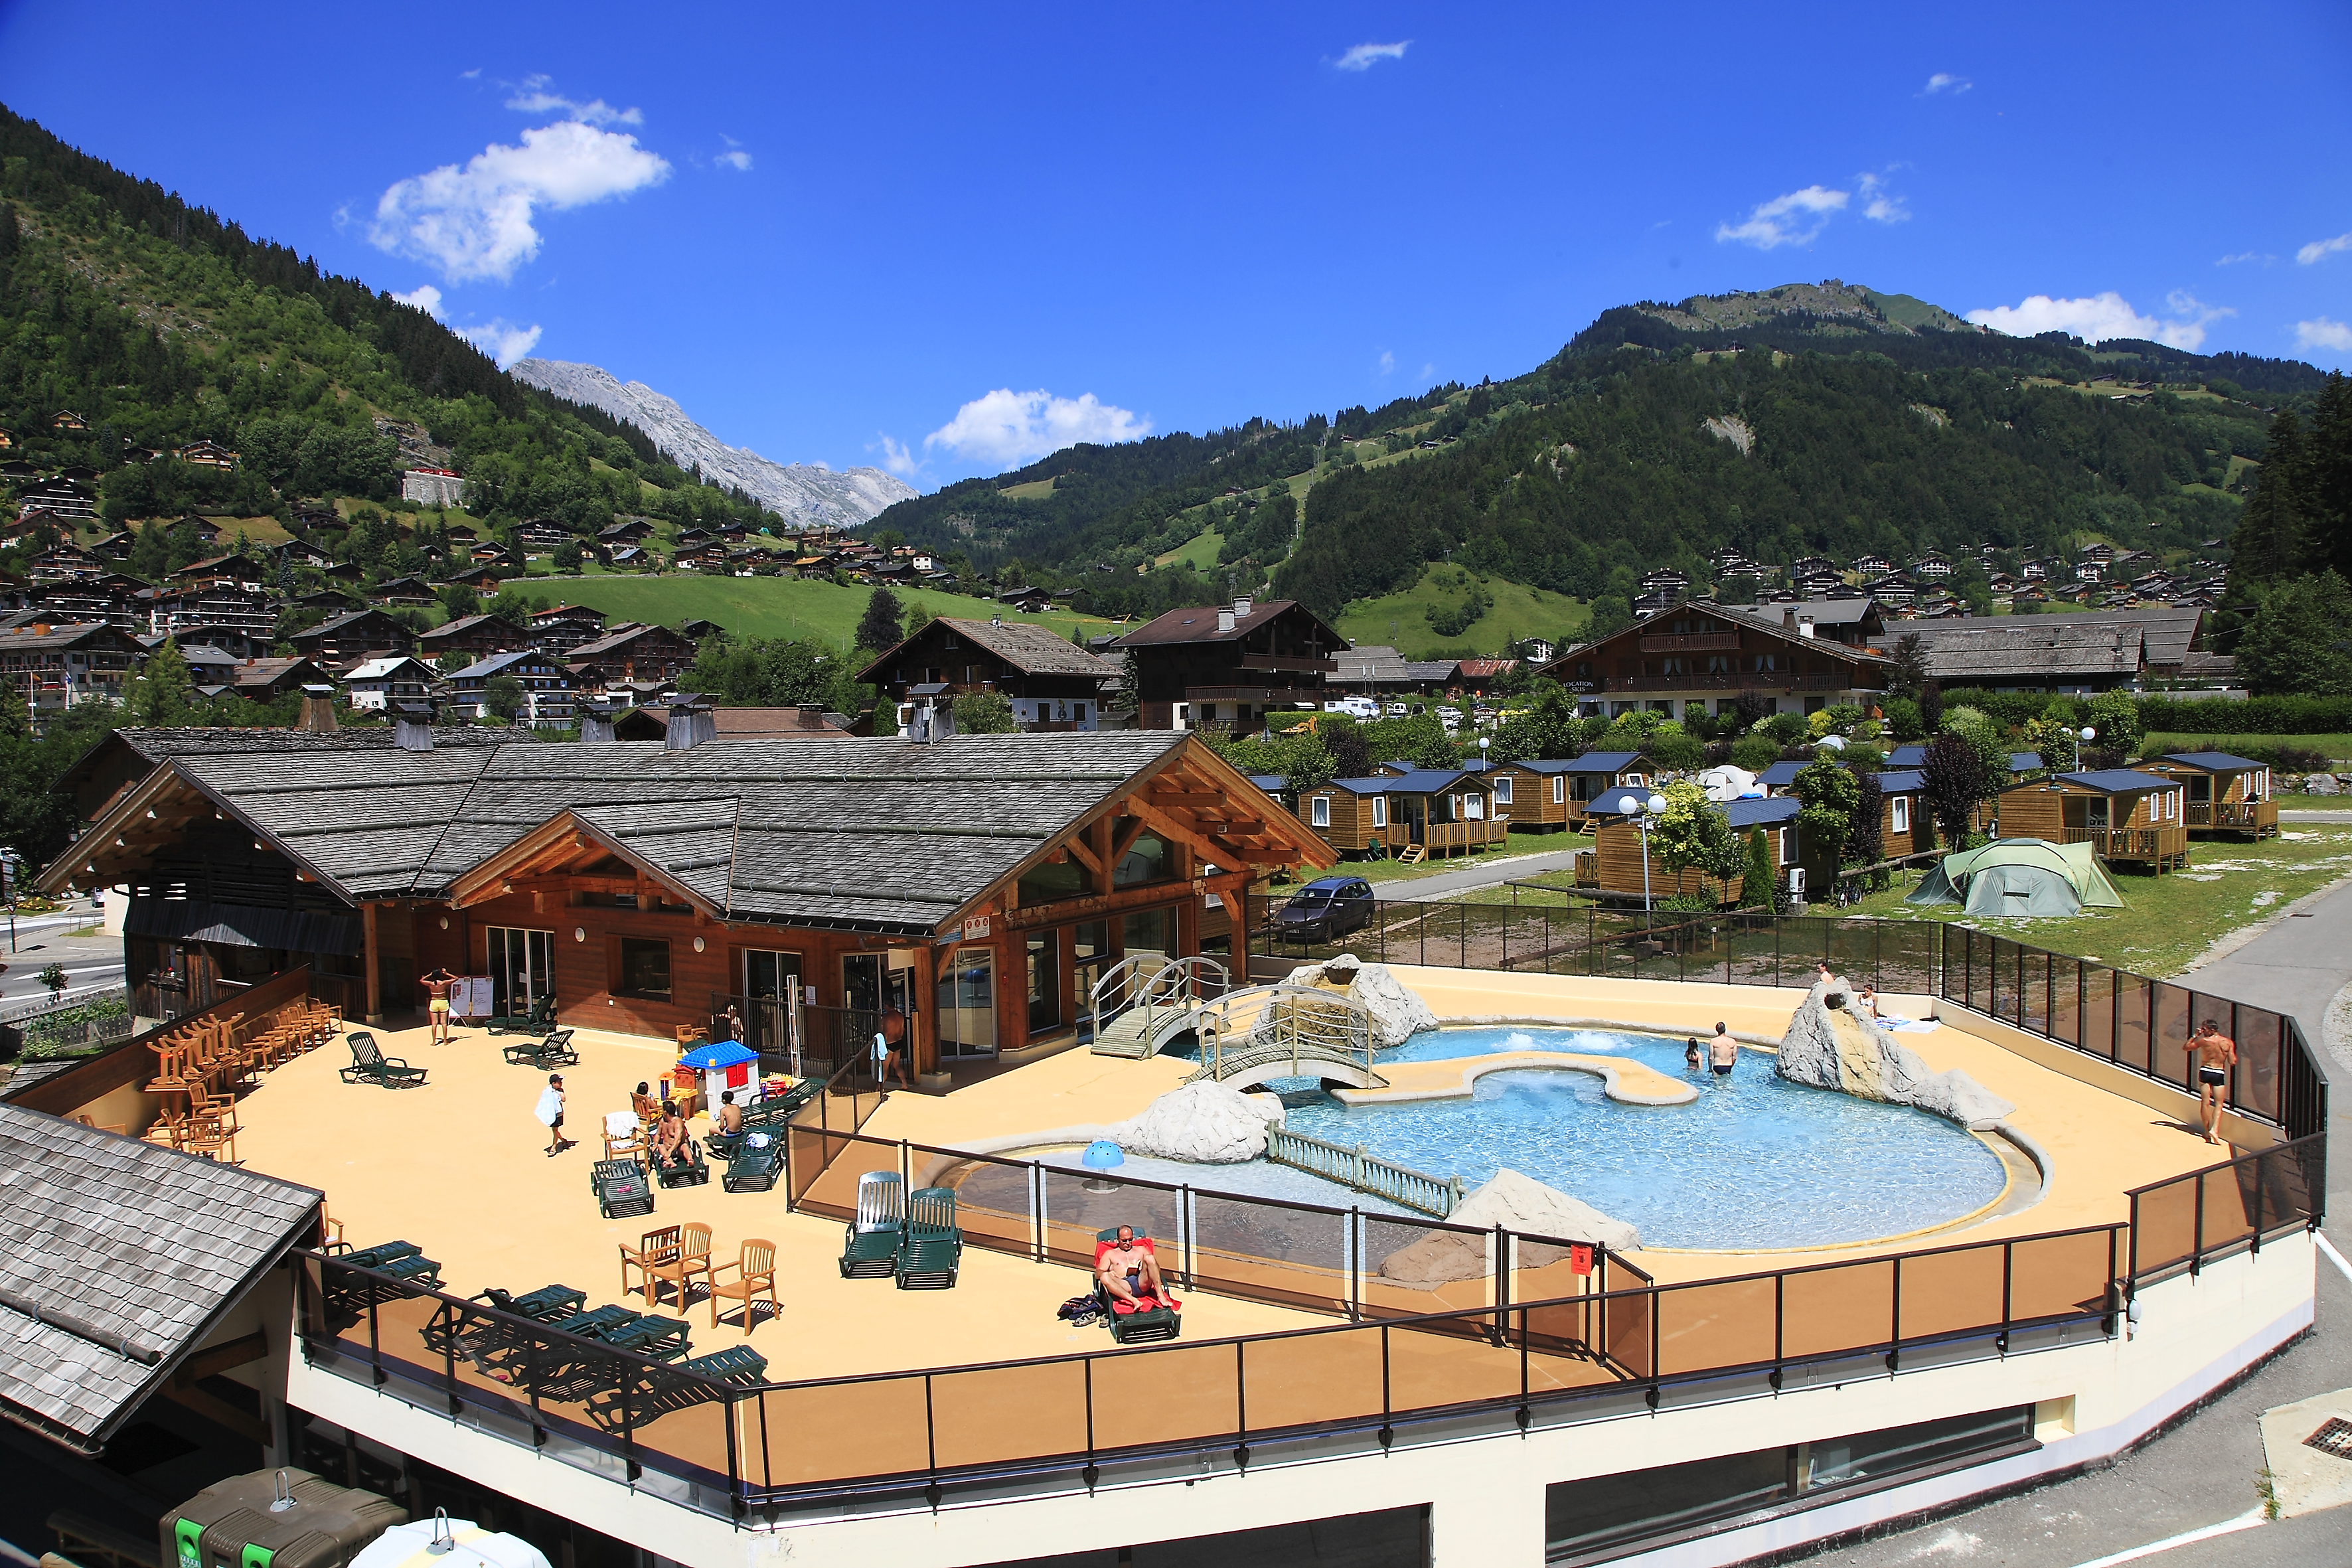 Camping montagne alpes